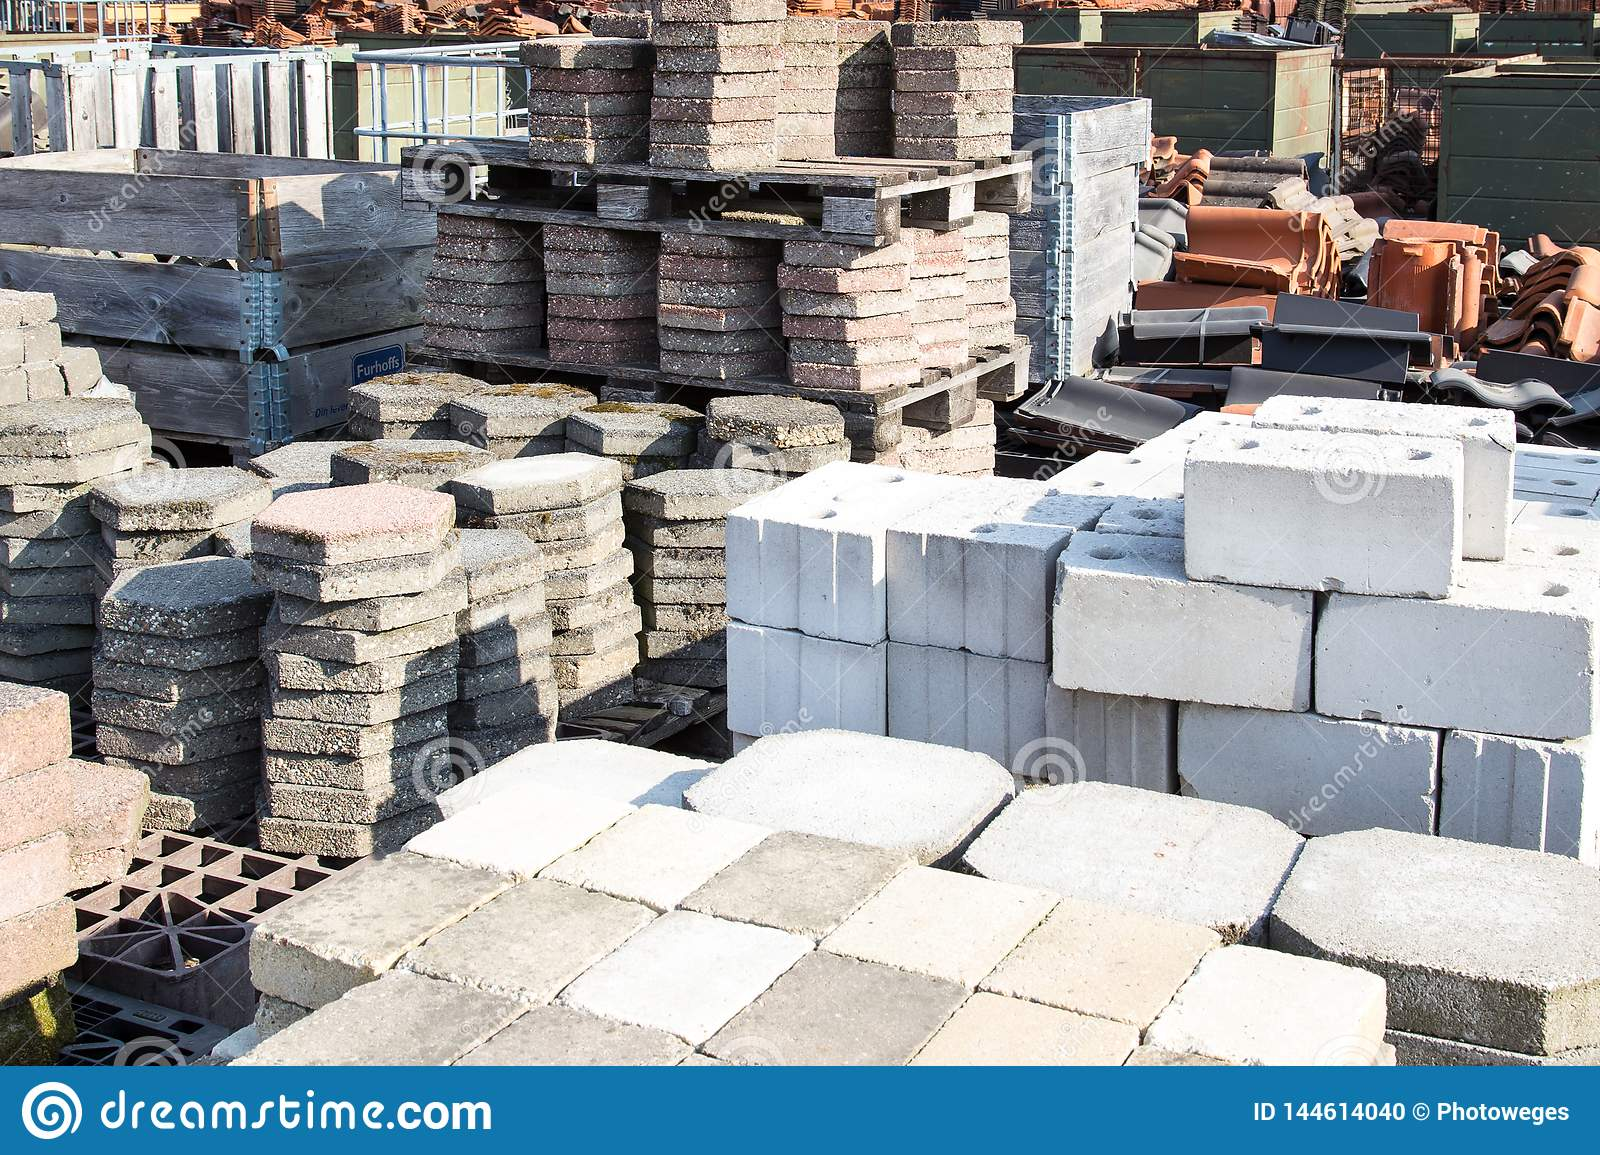 Reusable Building Material For Sale Stock Photo - Image of